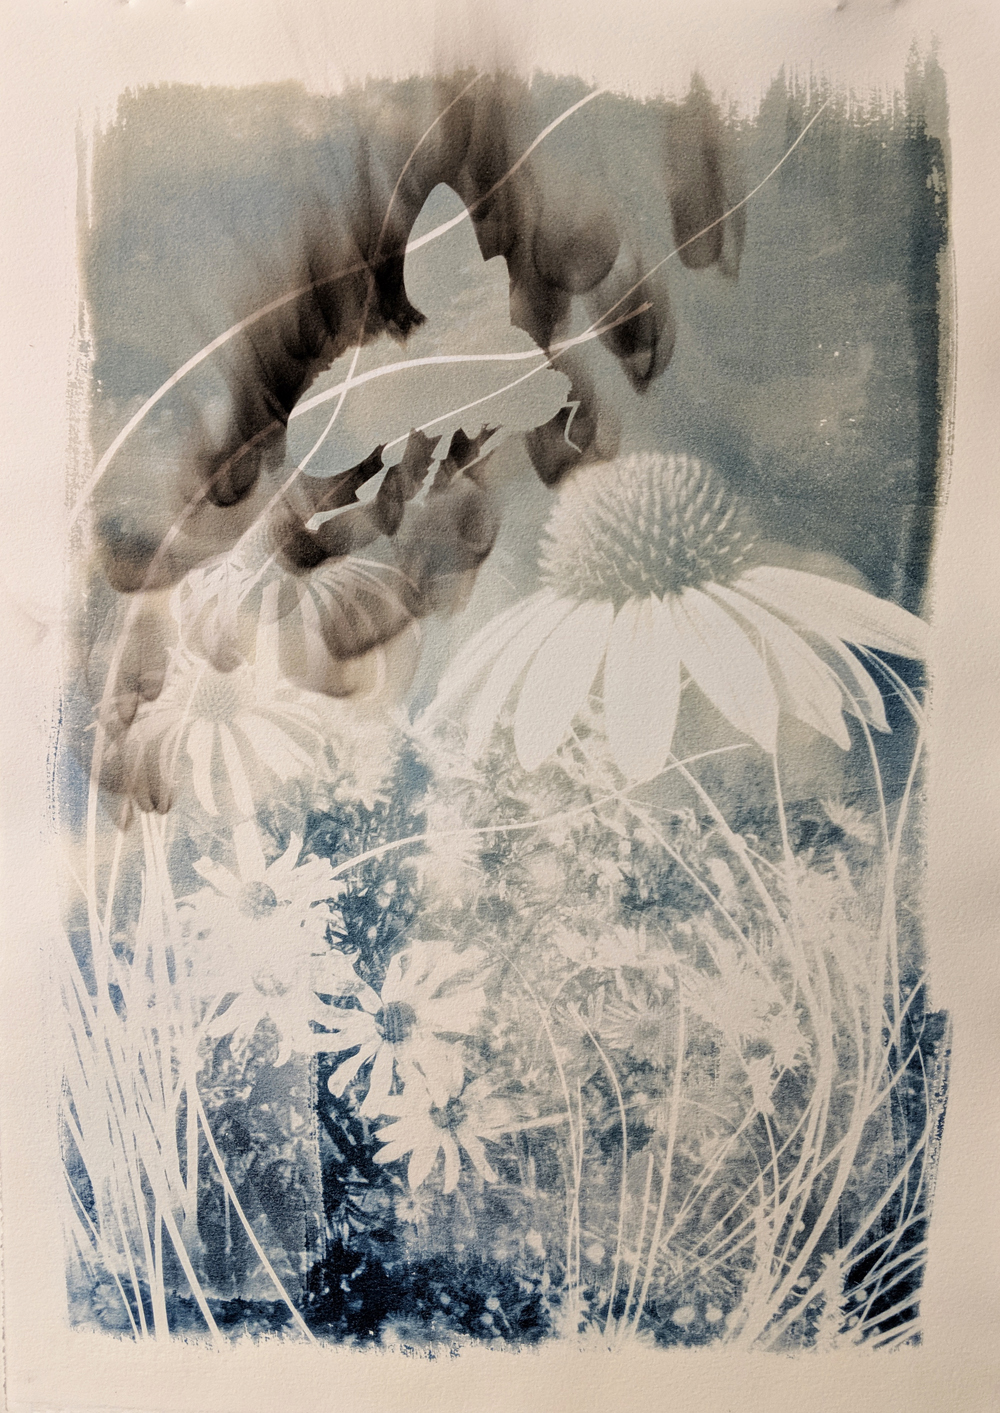 """- Rusty Patched Bumble Bee2019Cyanotype and candle soot, 15x22""""$190"""